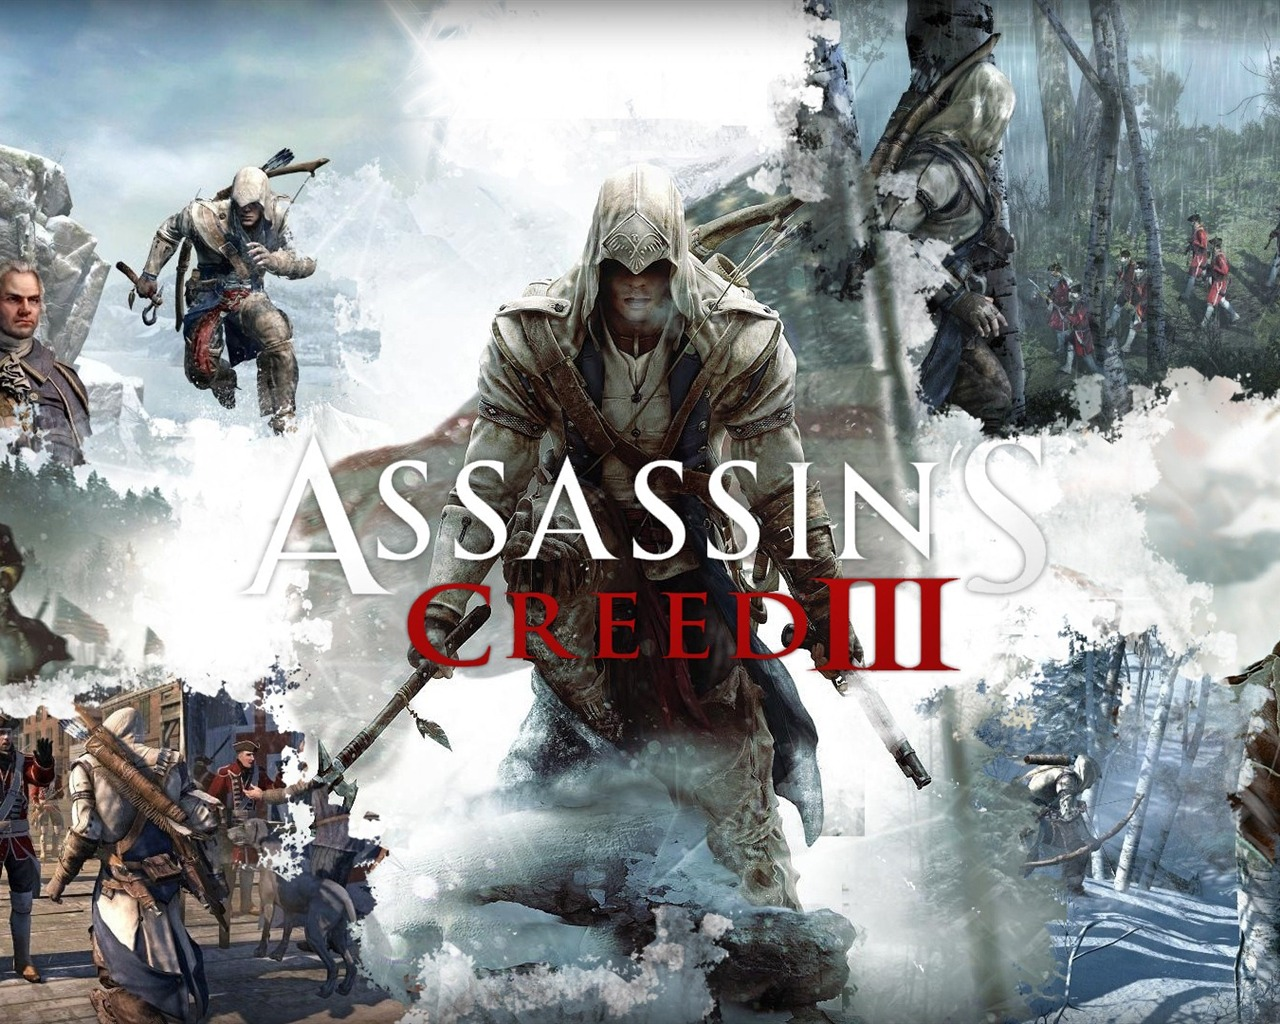 Assassins Creed 3 Game HD Wallpaper 11 Current Size 1280 x 1024 1280x1024